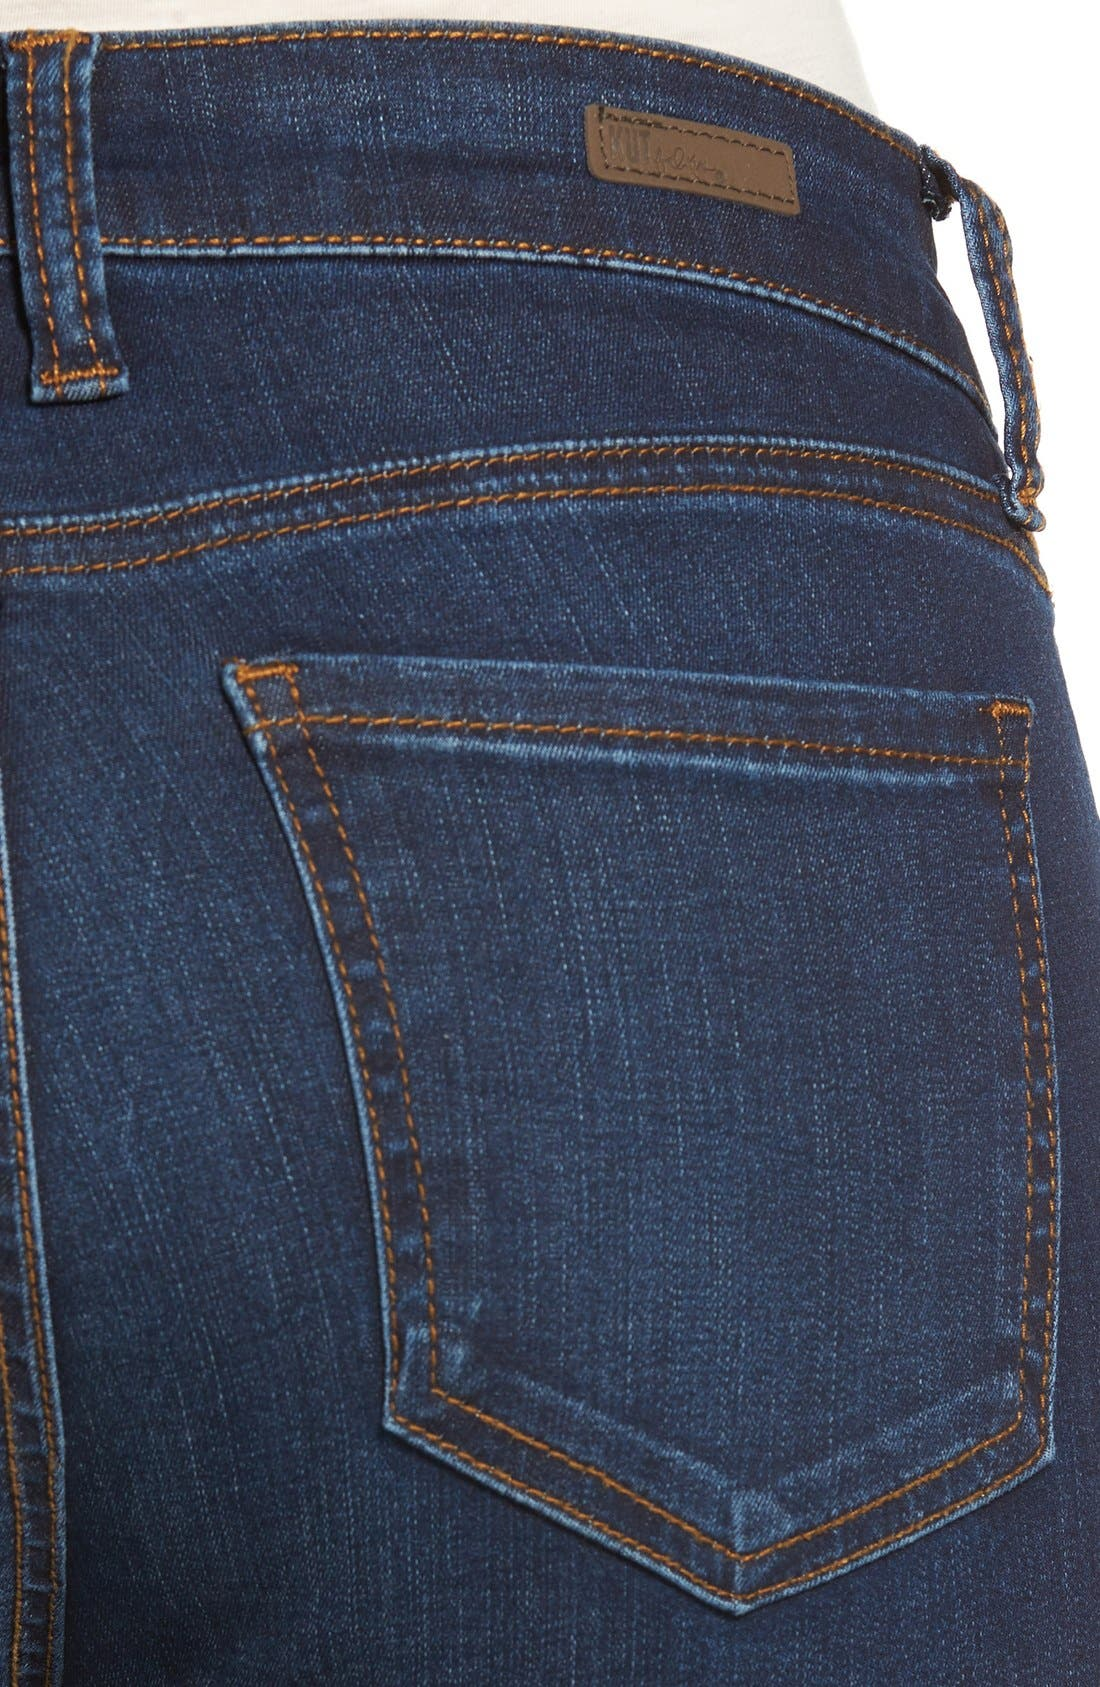 Alternate Image 4  - Kut From the Kloth Mia Stretch Skinny Jeans (Awareness)